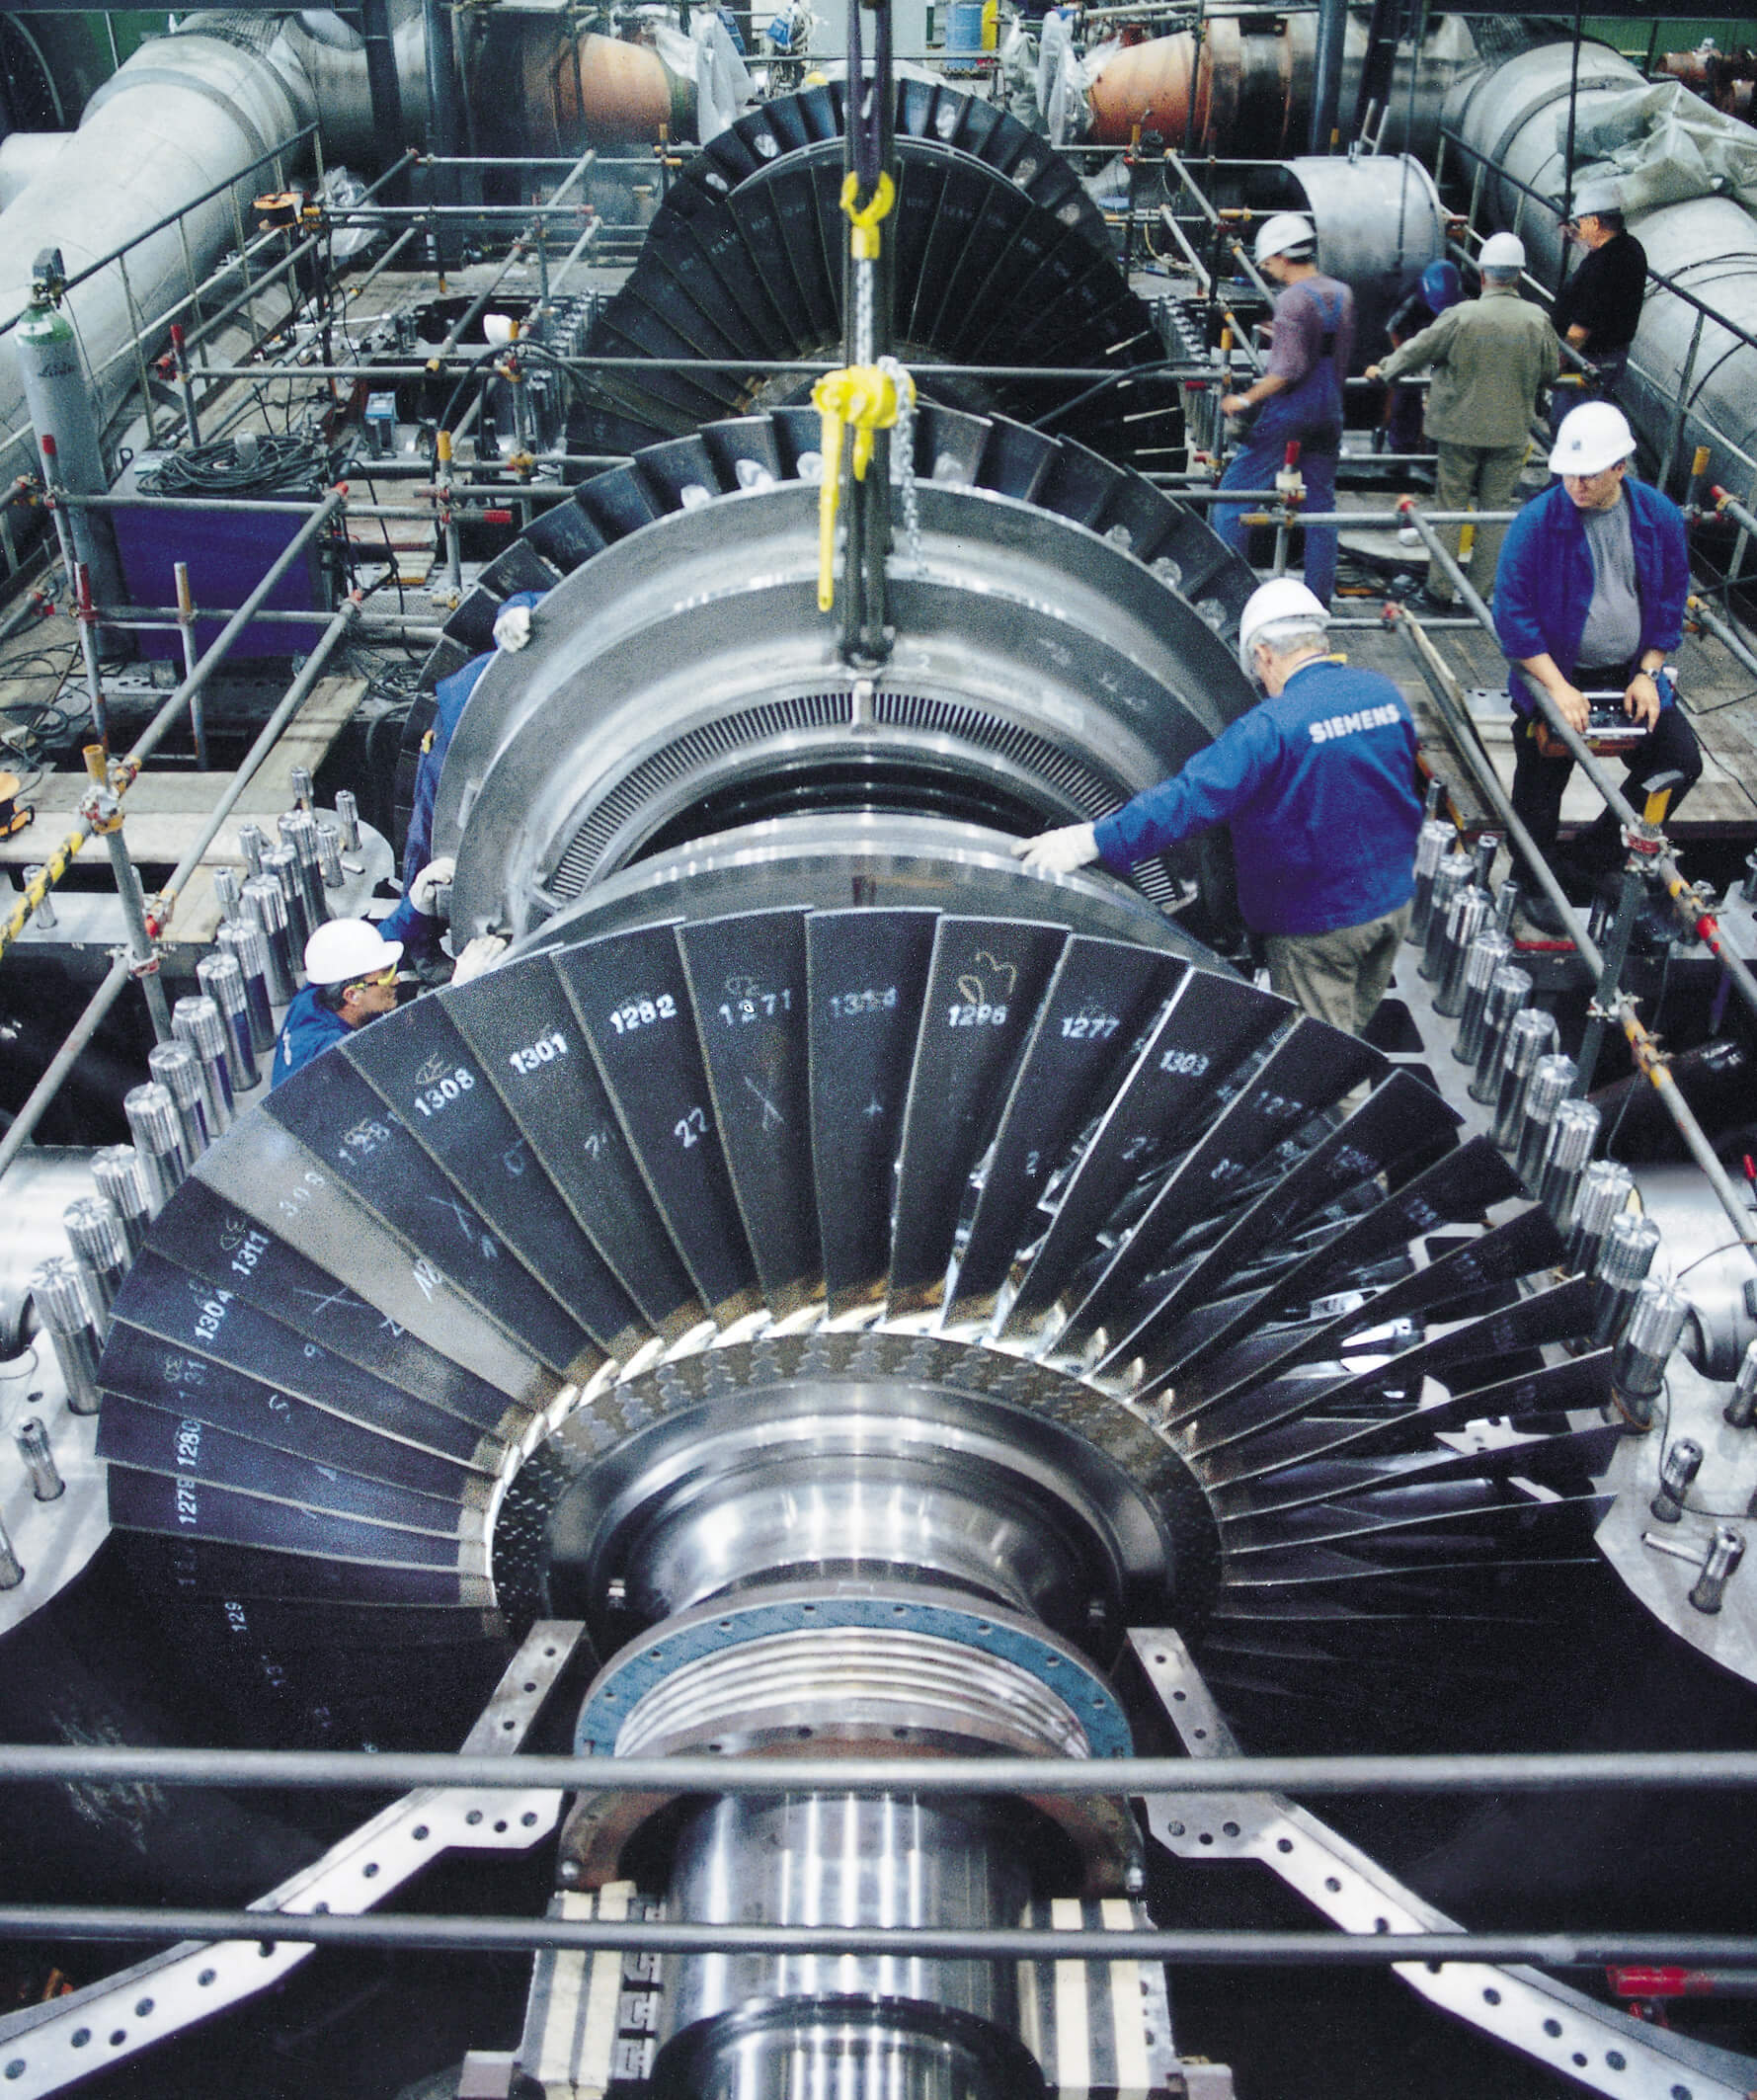 Design of a turbine requires collaboration of engineers from many fields, as the system is subject to mechanical, electro-magnetic and chemical processes. The blades, rotor and stator as well as the steam cycle all need to be carefully designed and optimized.